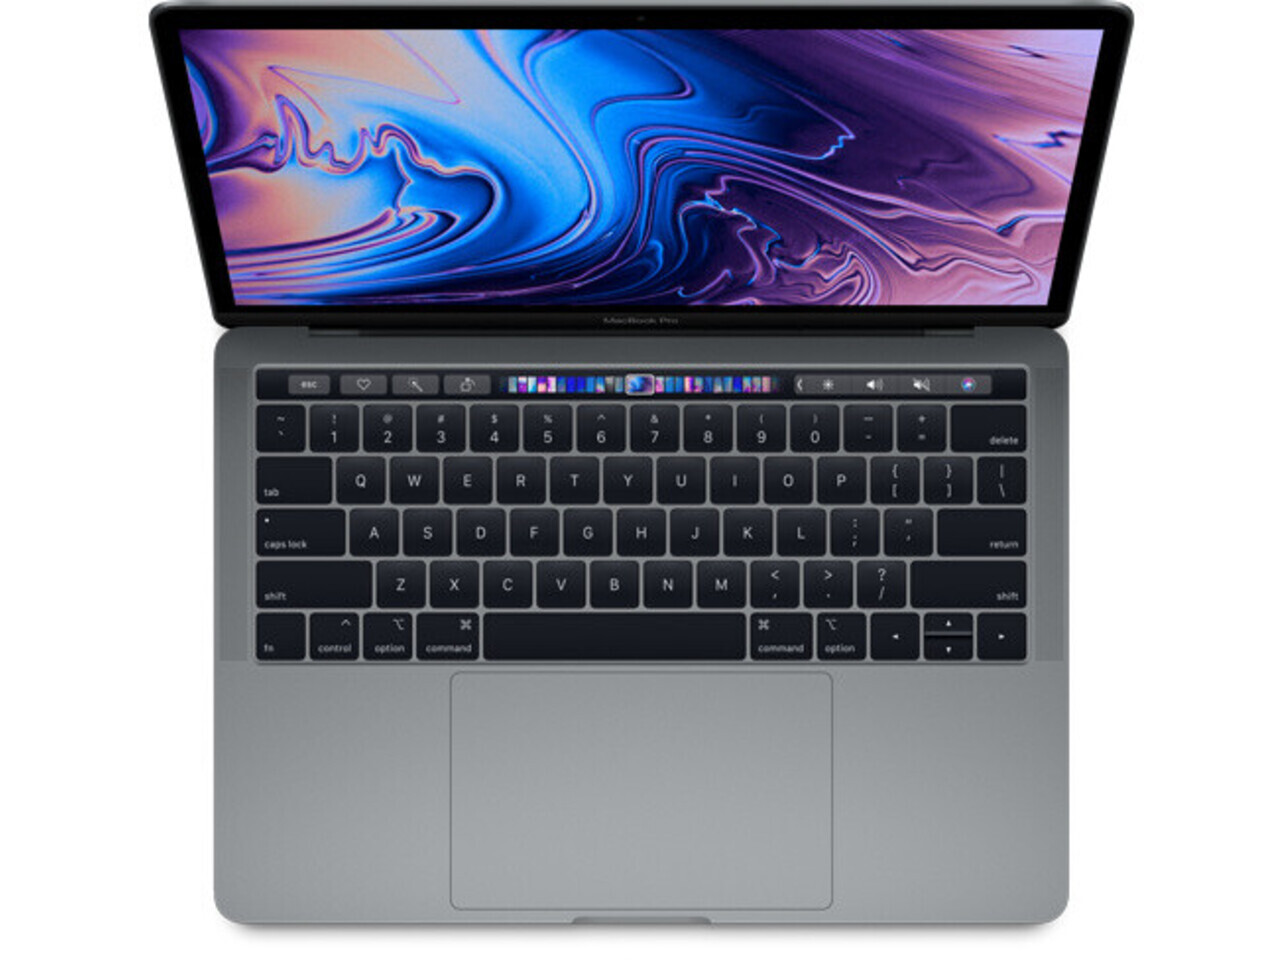 macbook pro 13 inch touch bar 2019 space gray